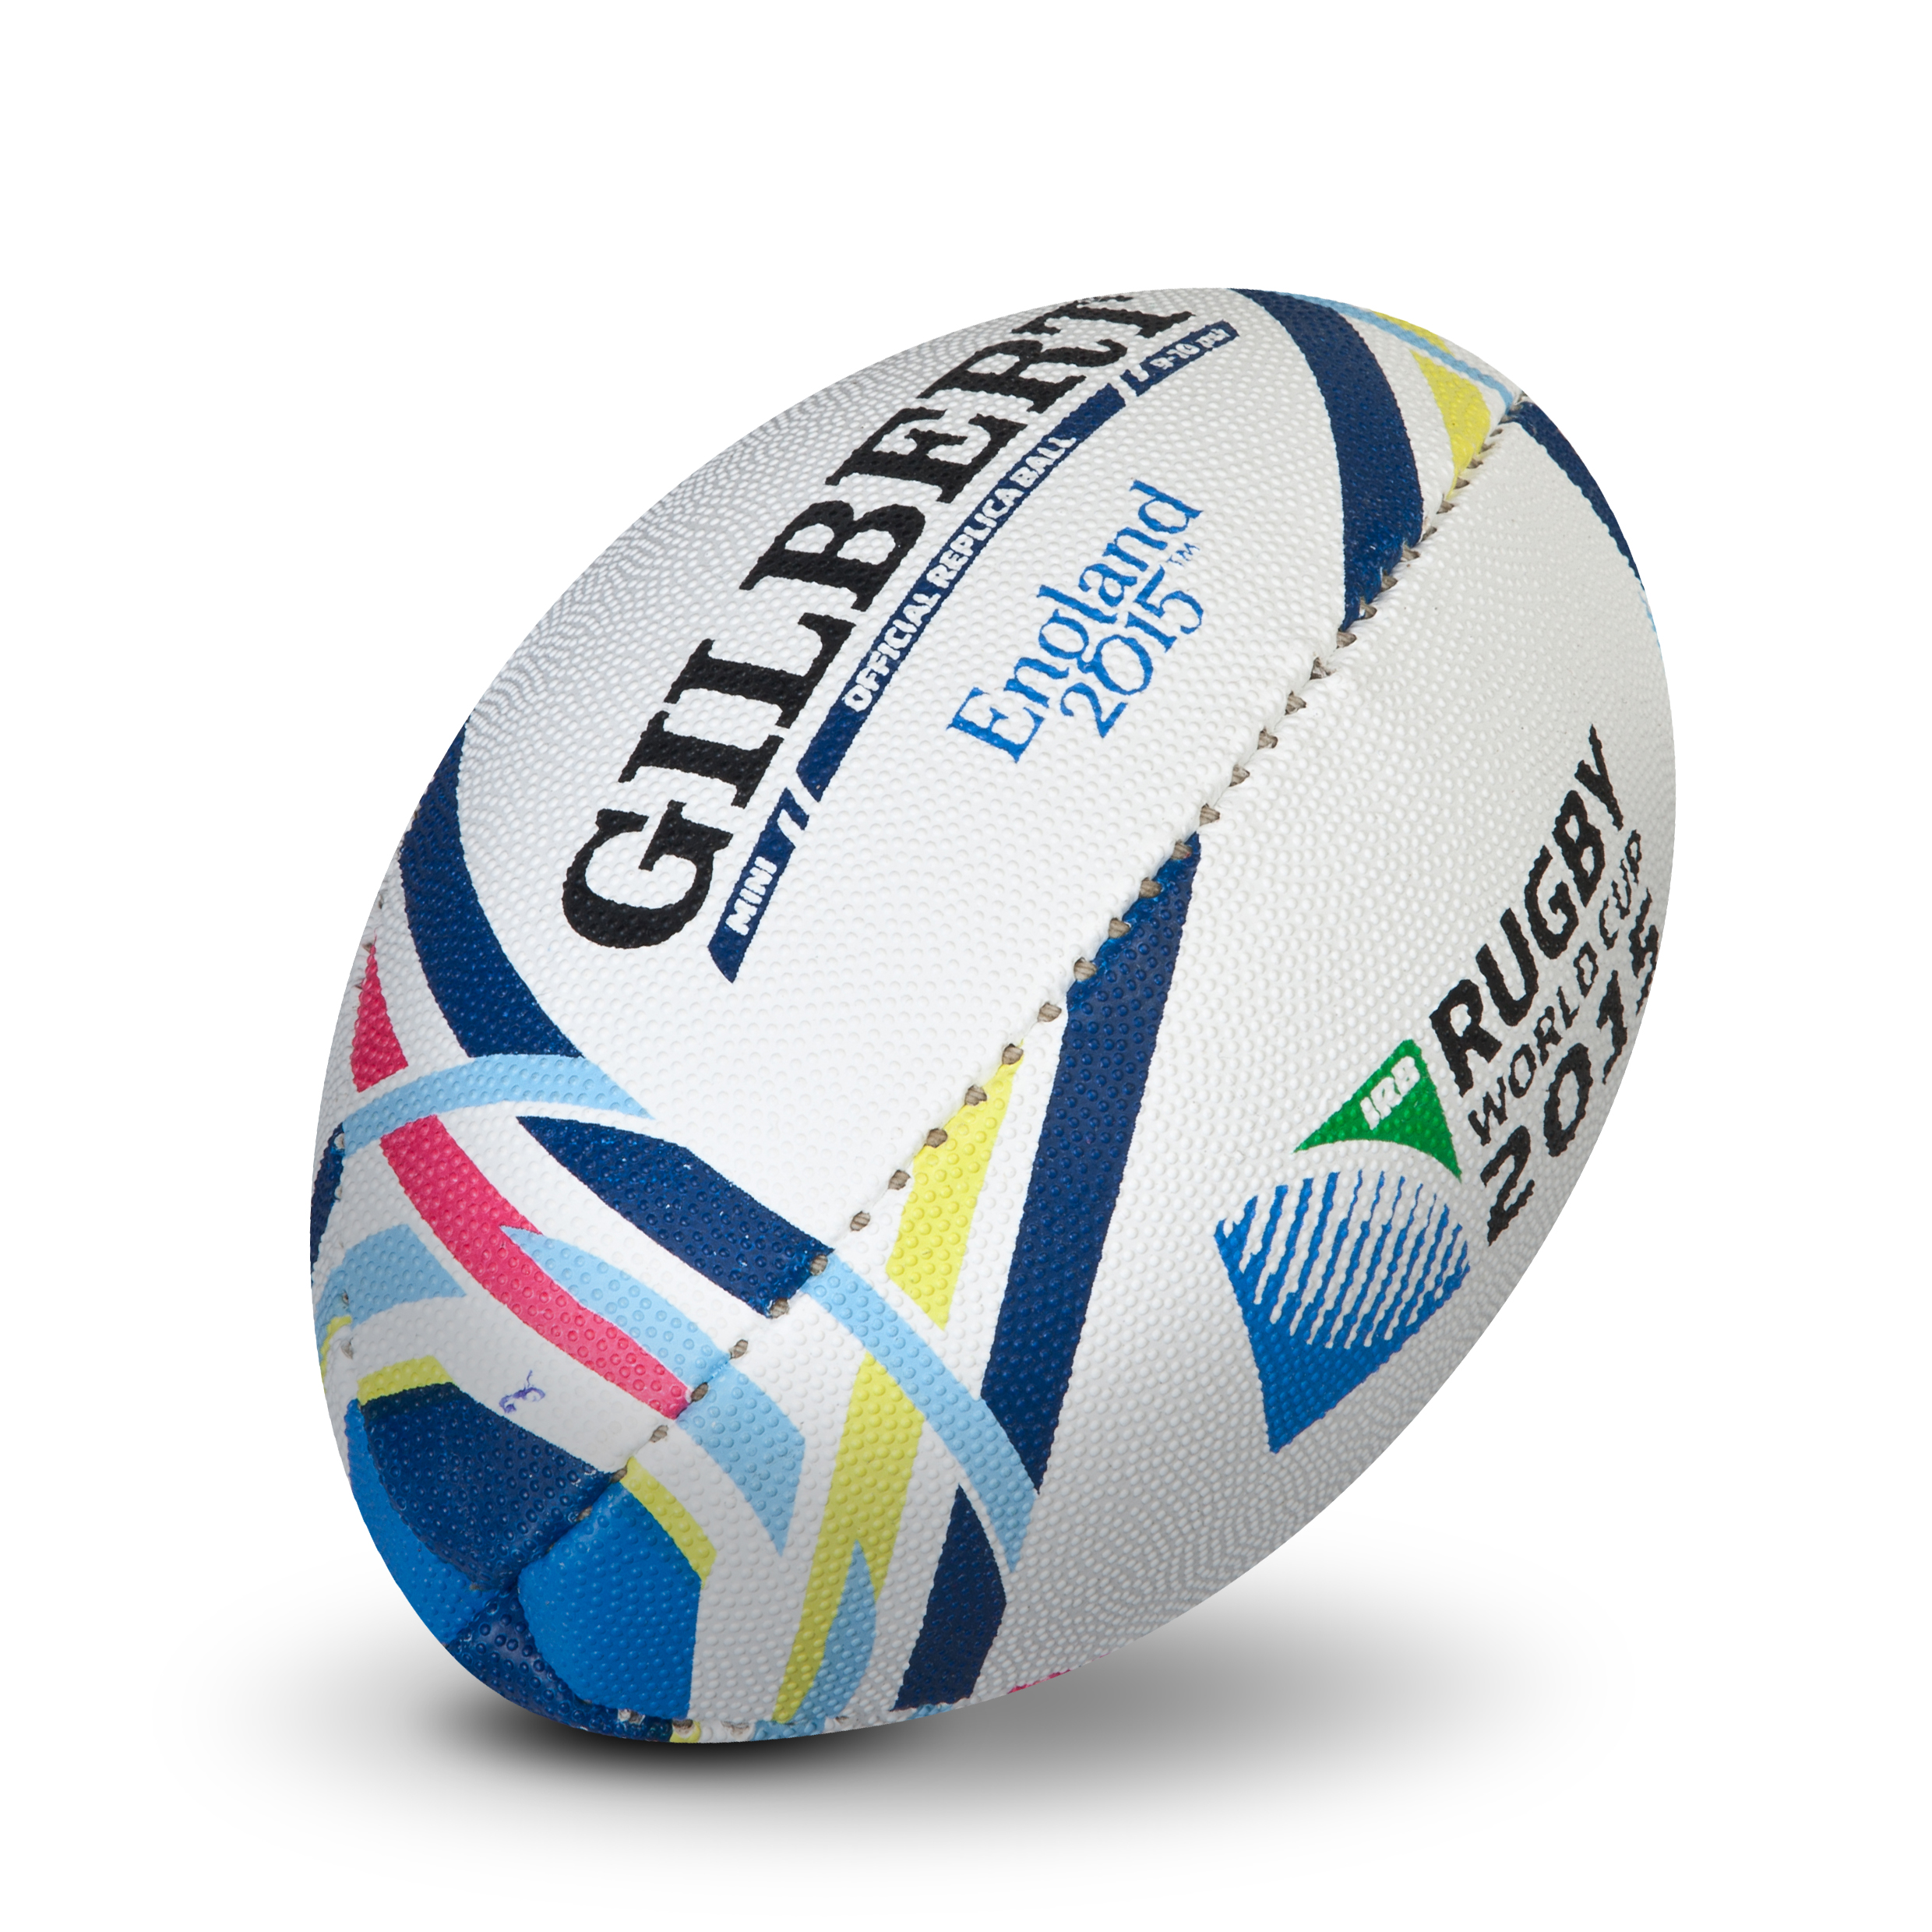 Gilbert Rugby World Cup 2015 Replica Ball - Mini White